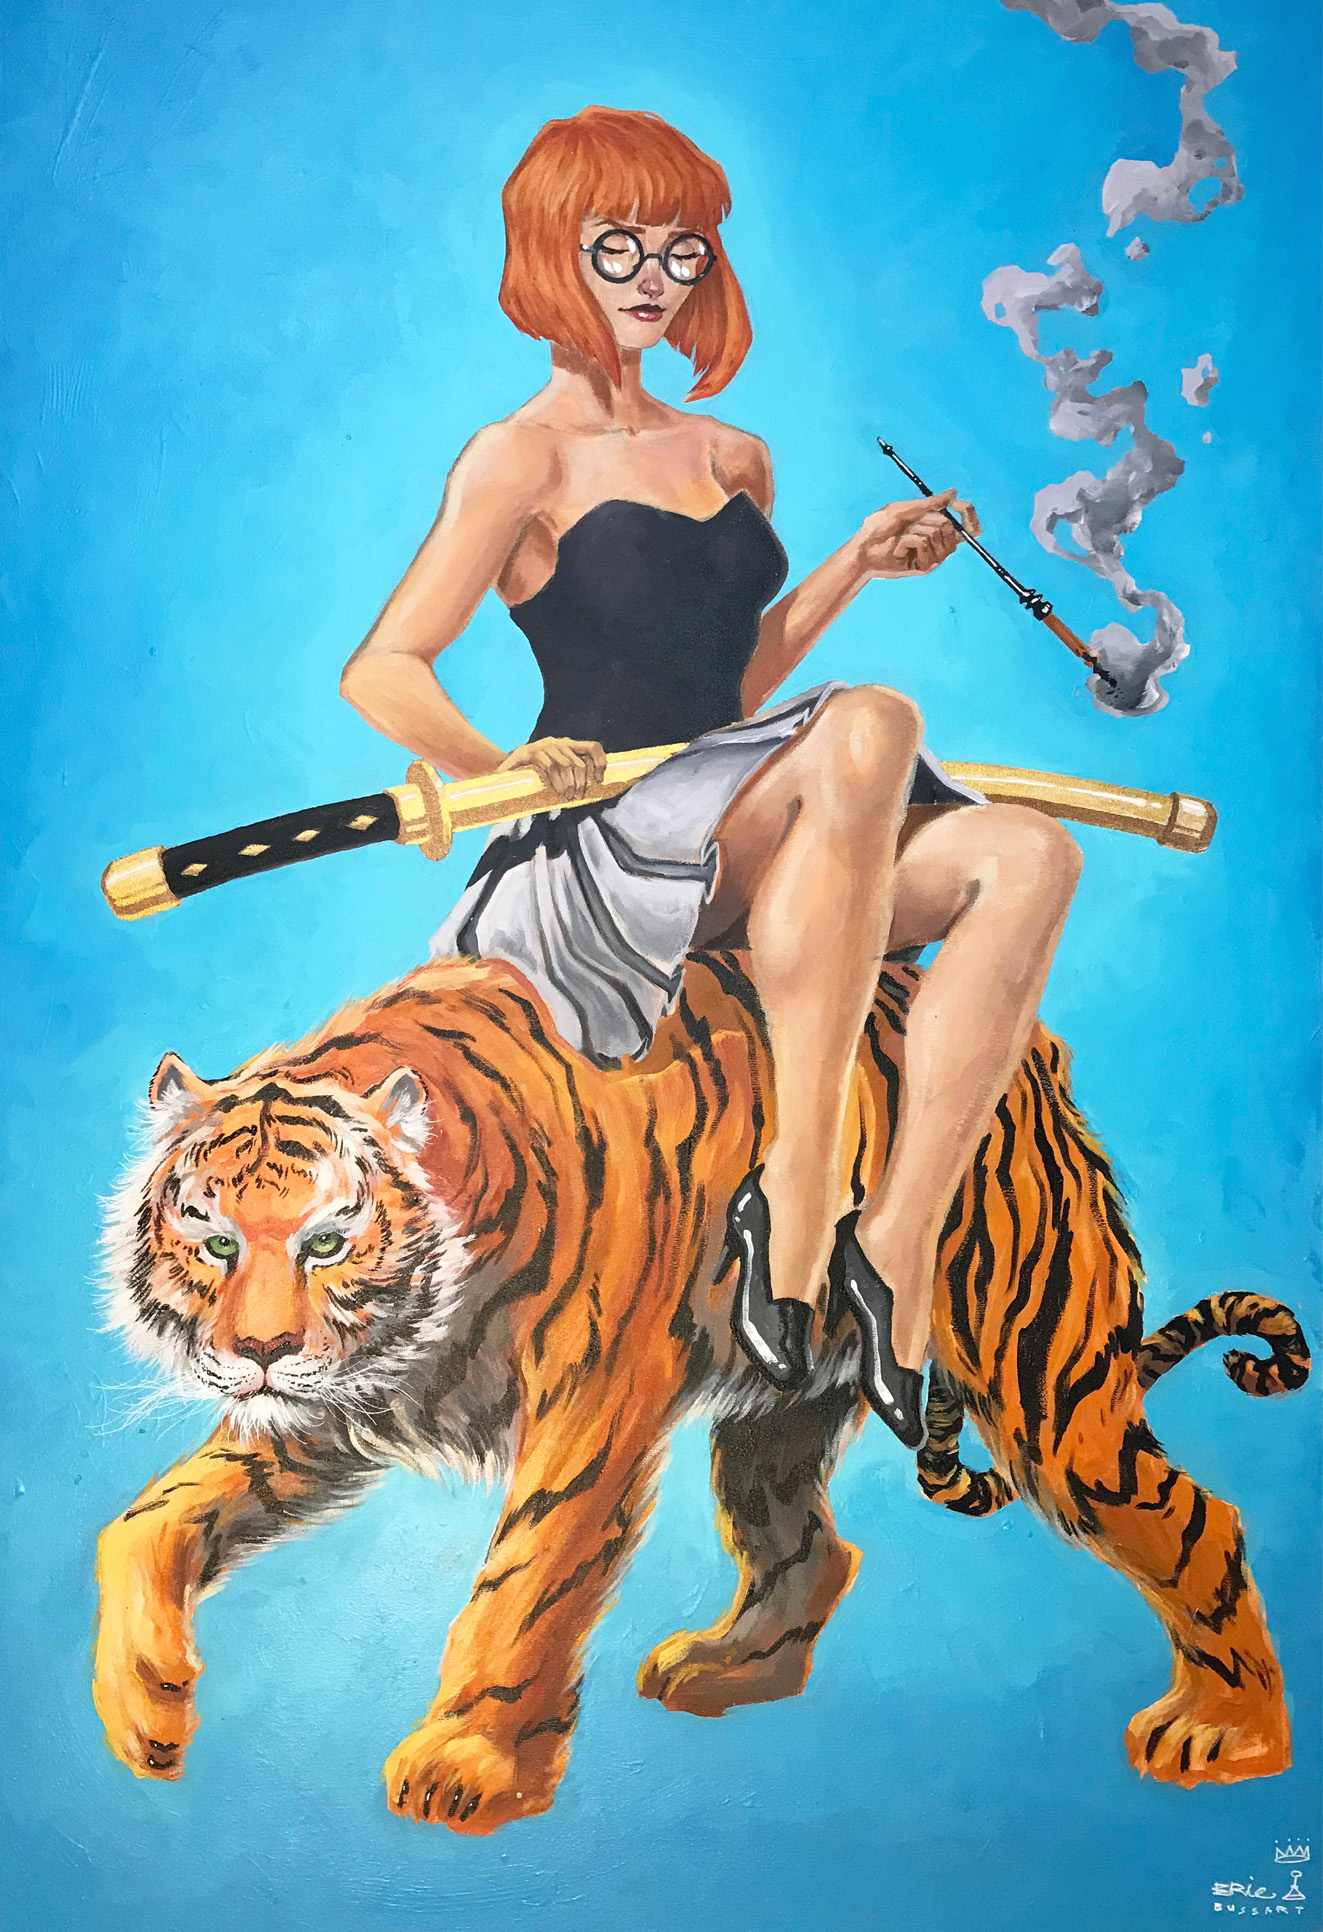 Tiger girl on blue, acryilic painting by ERIC BUSSART illustrator and muralist.jpg